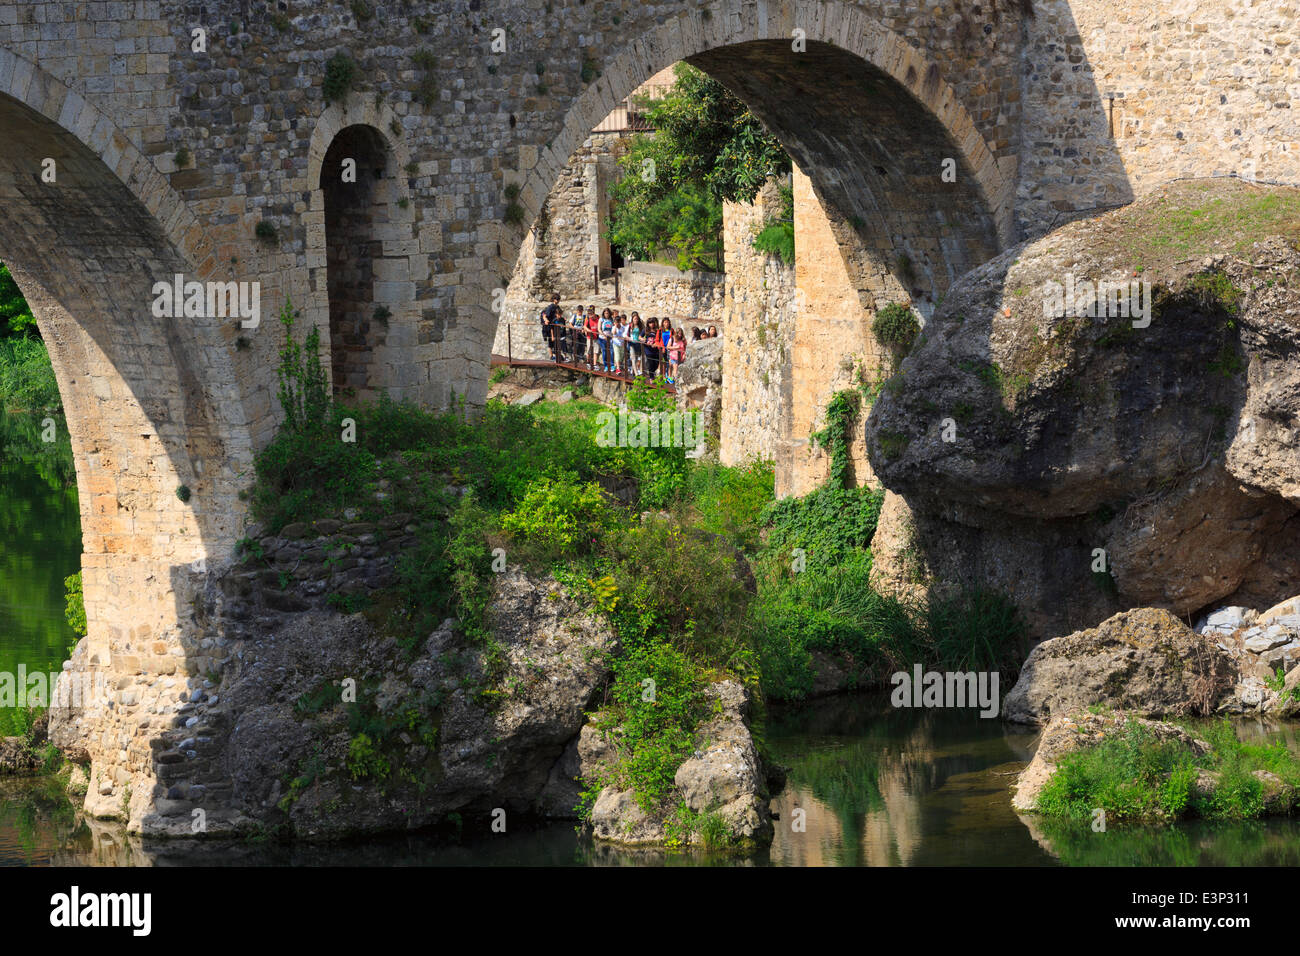 Besalu, Catalonia, Spain. A group of schoolchildren on an outing look up at the construction of the Romanesque bridge. - Stock Image